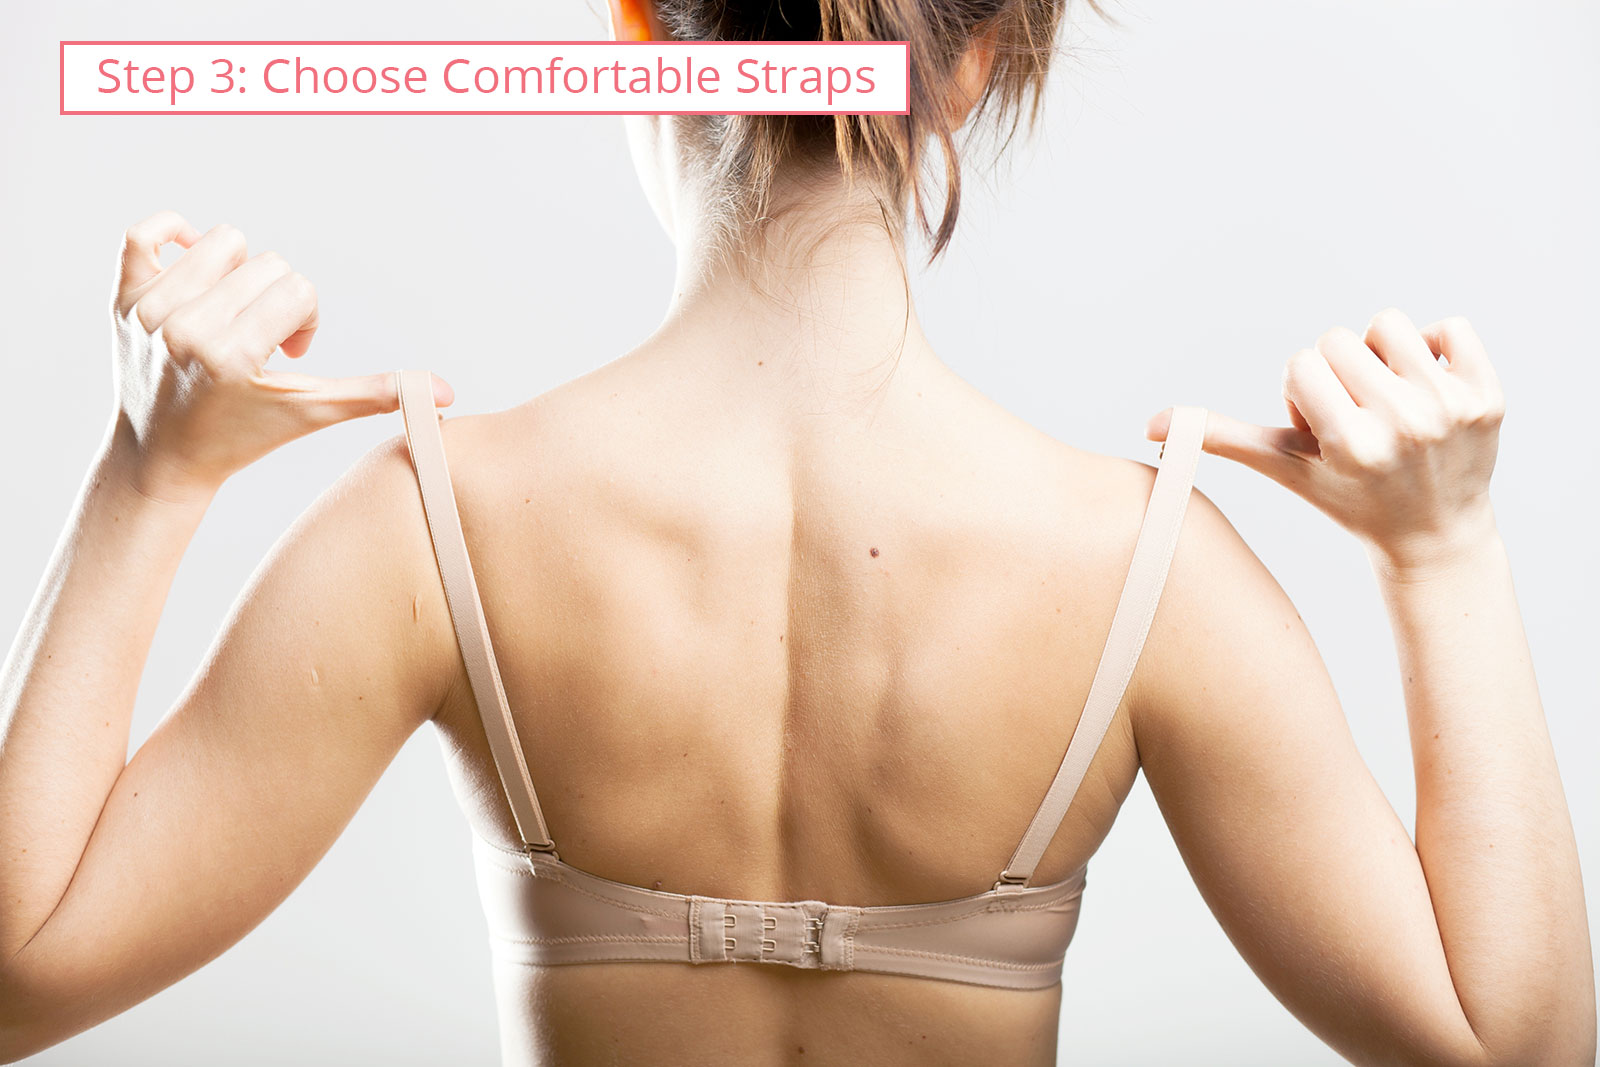 Bra size chart: choose comfortable straps